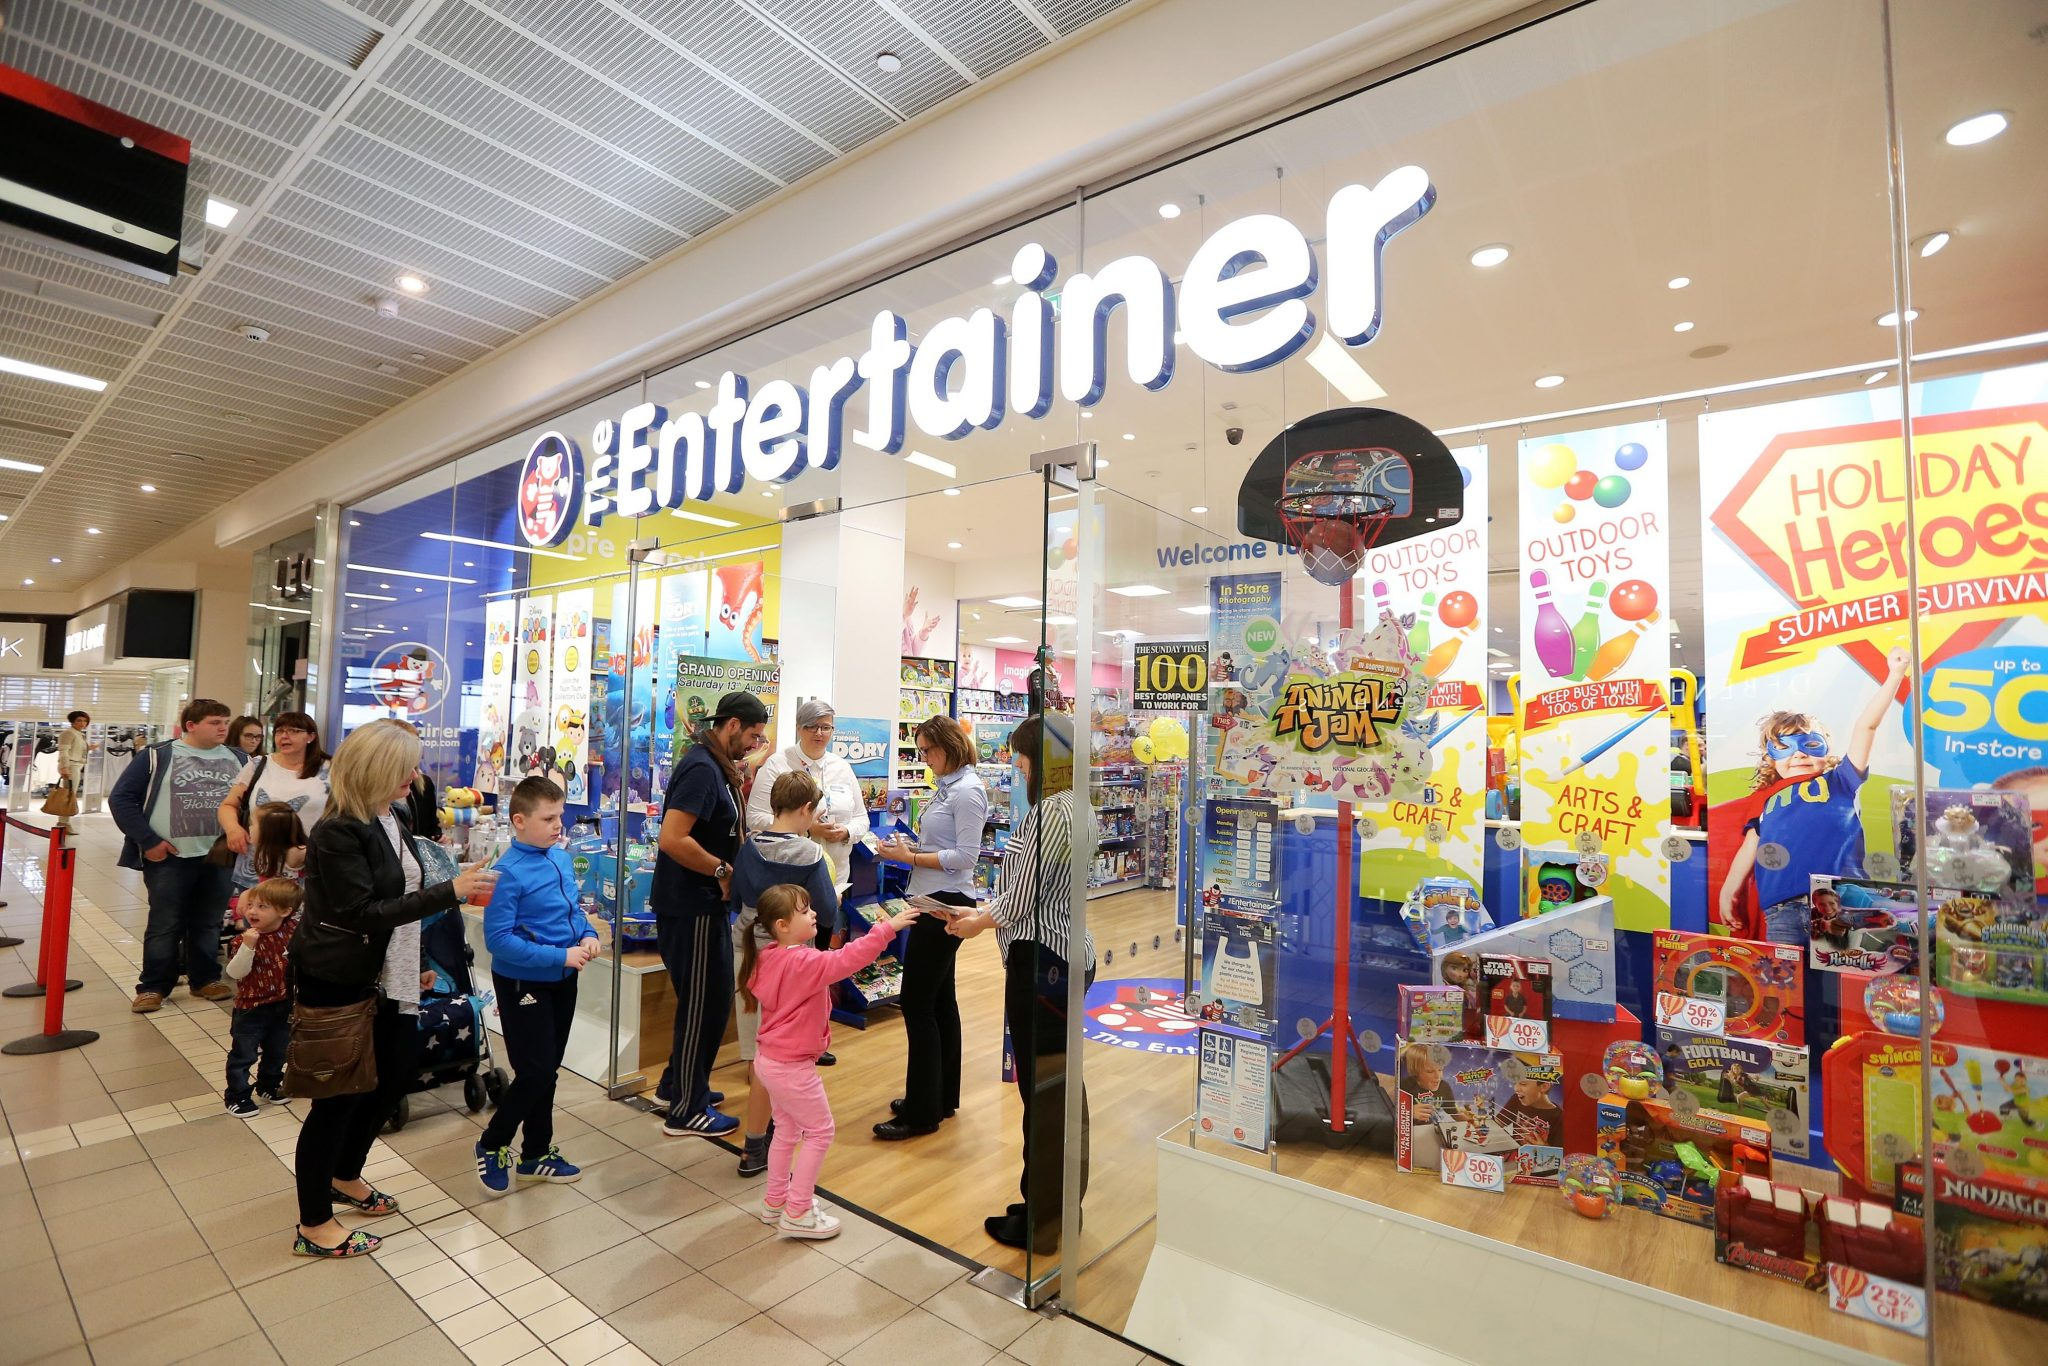 The Entertainer expands to India via new deal with Reliance Brands - Retail Gazette